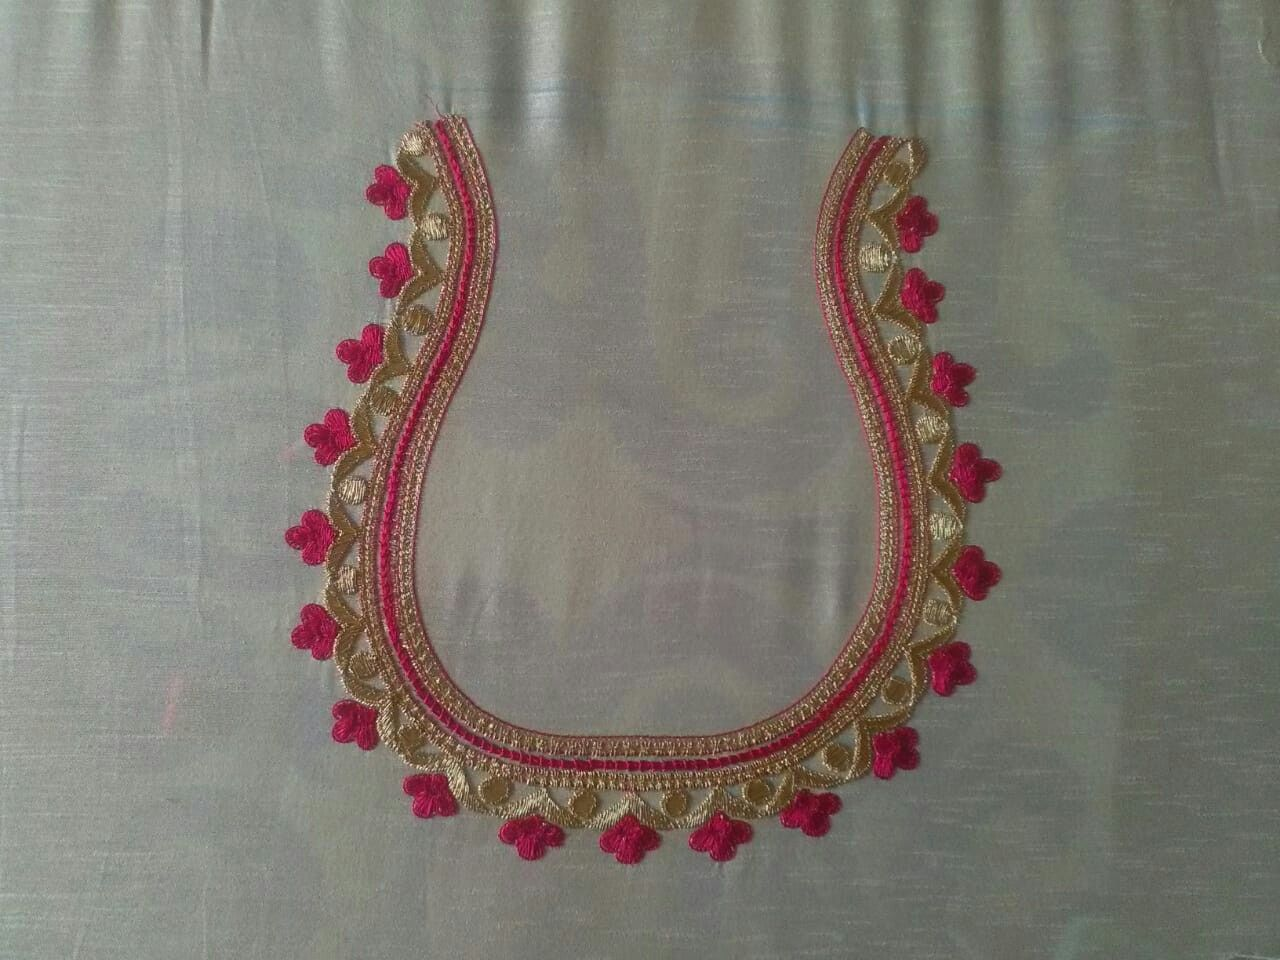 Pin By Maanya Reddy Event Manager On Classy Self Designs Embroidery Blouse Designs Hand Work Blouse Design Embroidered Blouse Designs,Boutique Fashion Designer Studio Interior